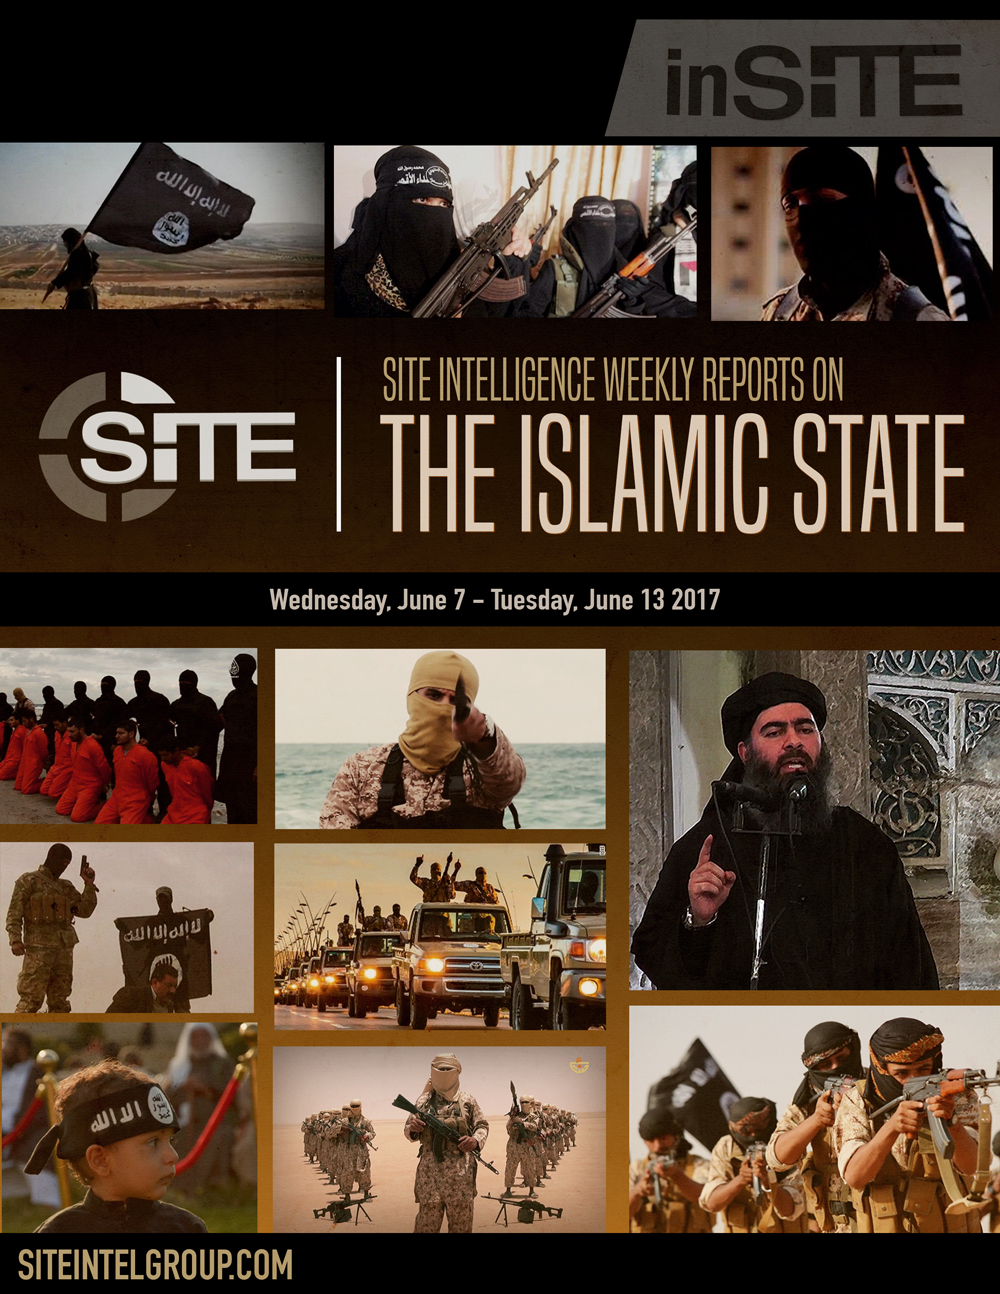 Weekly inSITE on the Islamic State, March 8 - 14, 2017